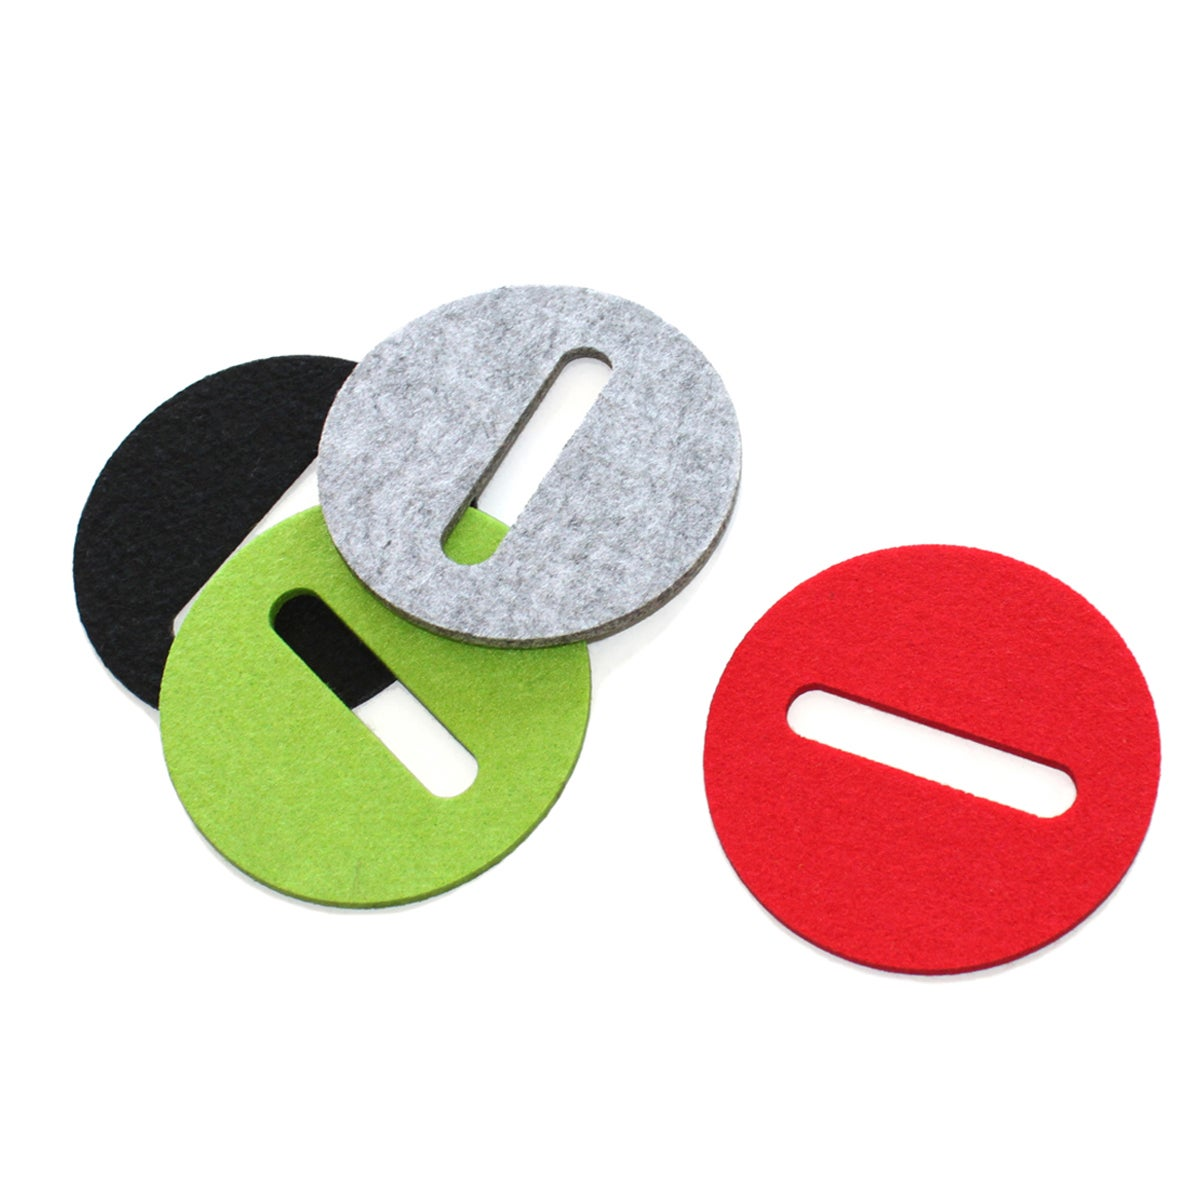 Image of Cupa-Stay Coasters Multi Color